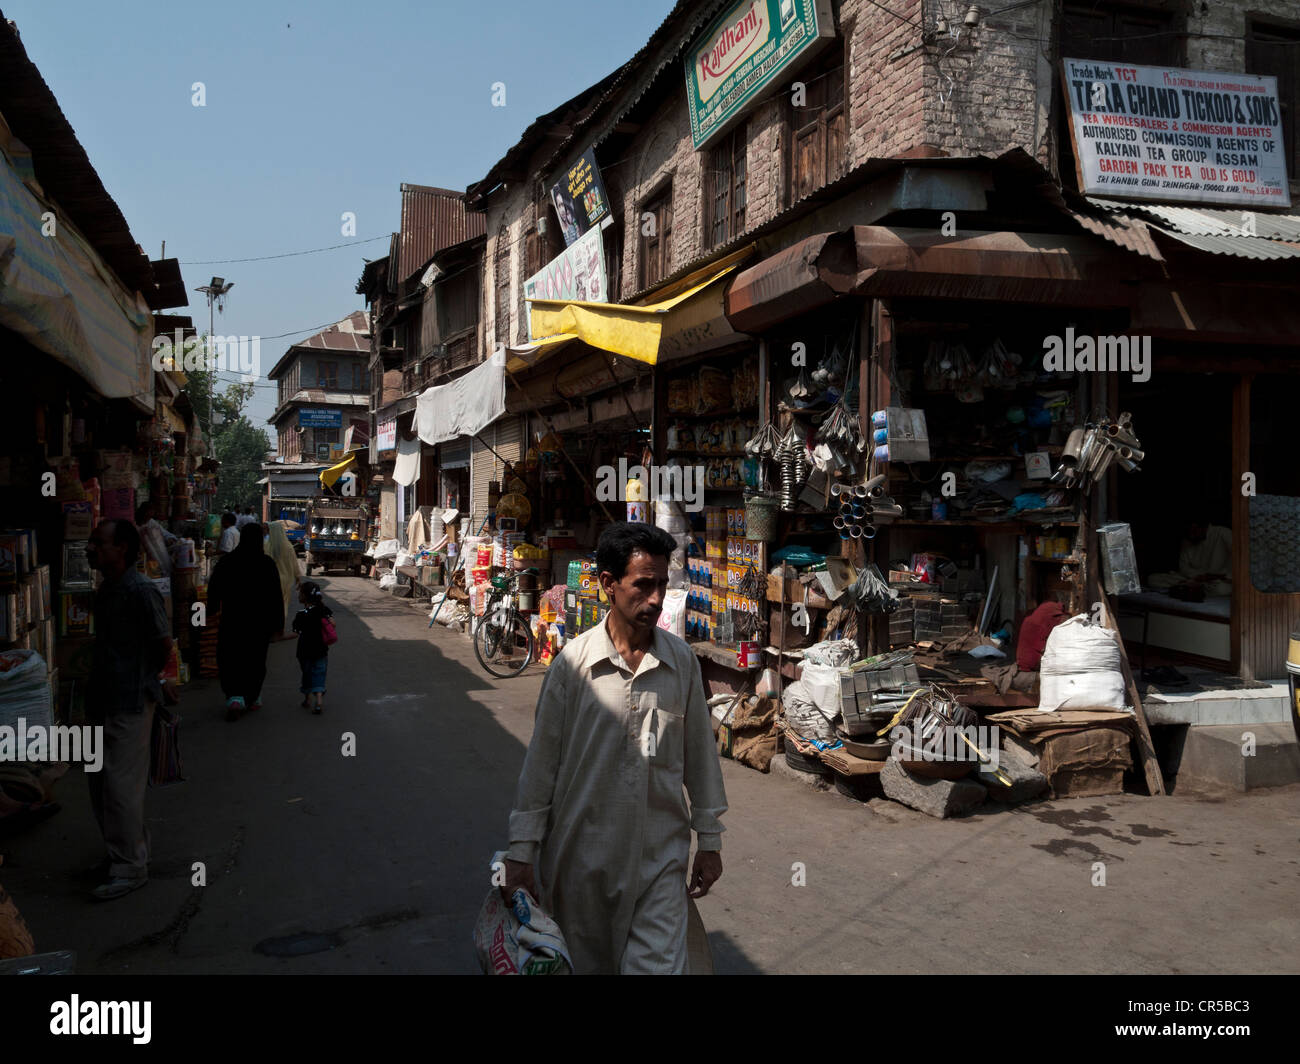 Streetscene in Srinagar, Jammu and Kashmir, India, Asia - Stock Image